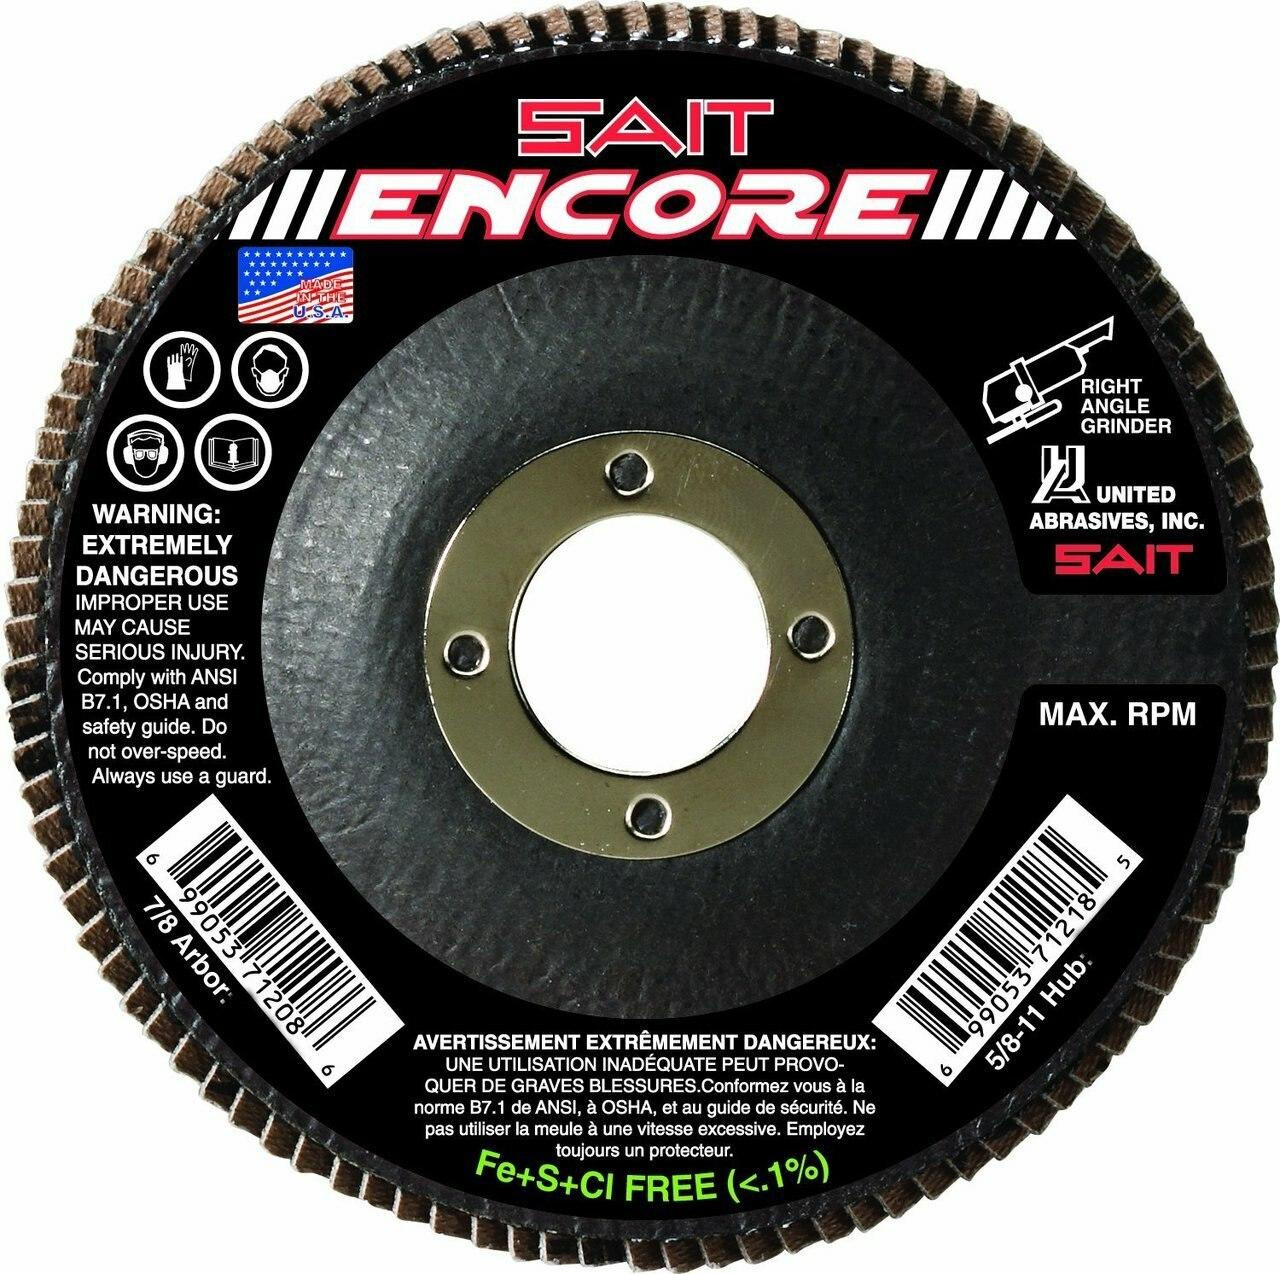 United Abrasives Sait 71211 4-1/2 x 7/8 Type 27 120-Grit Flap Disc - Box of 10